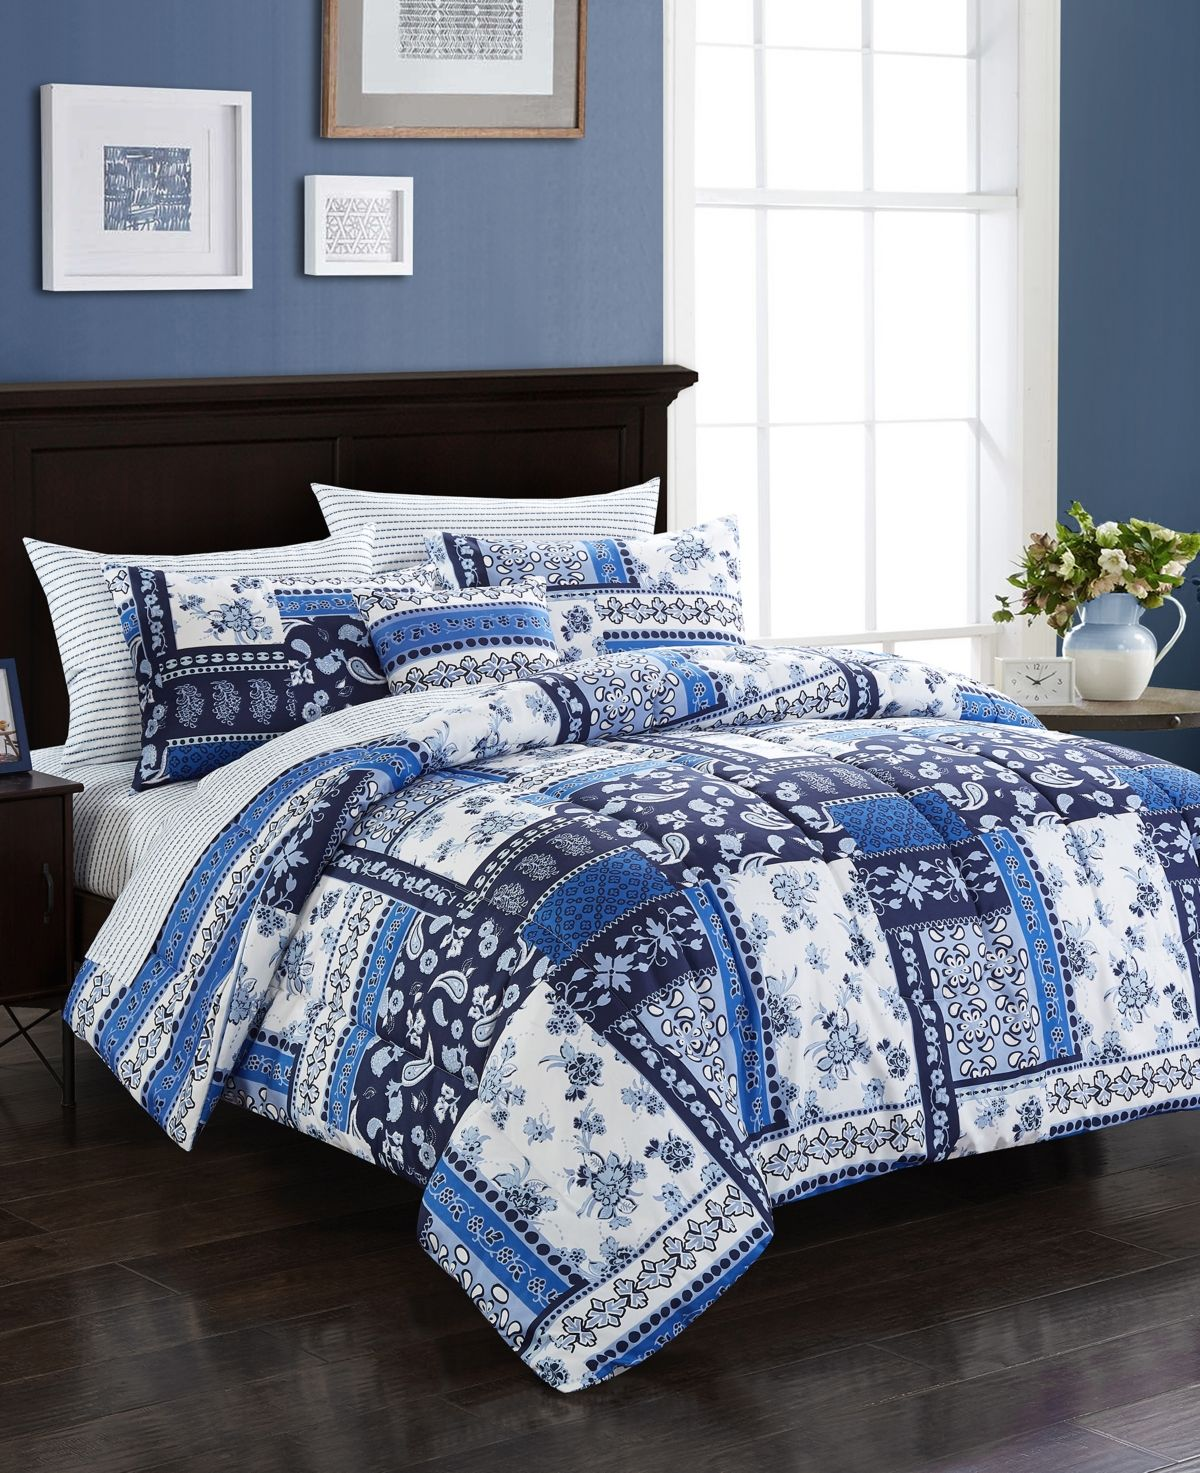 Idea Nuova Urban Living Violet Bedding Set Reviews Bedding Collections Bed Bath Macy S King Bedding Sets Bed In A Bag Queen Bedding Sets